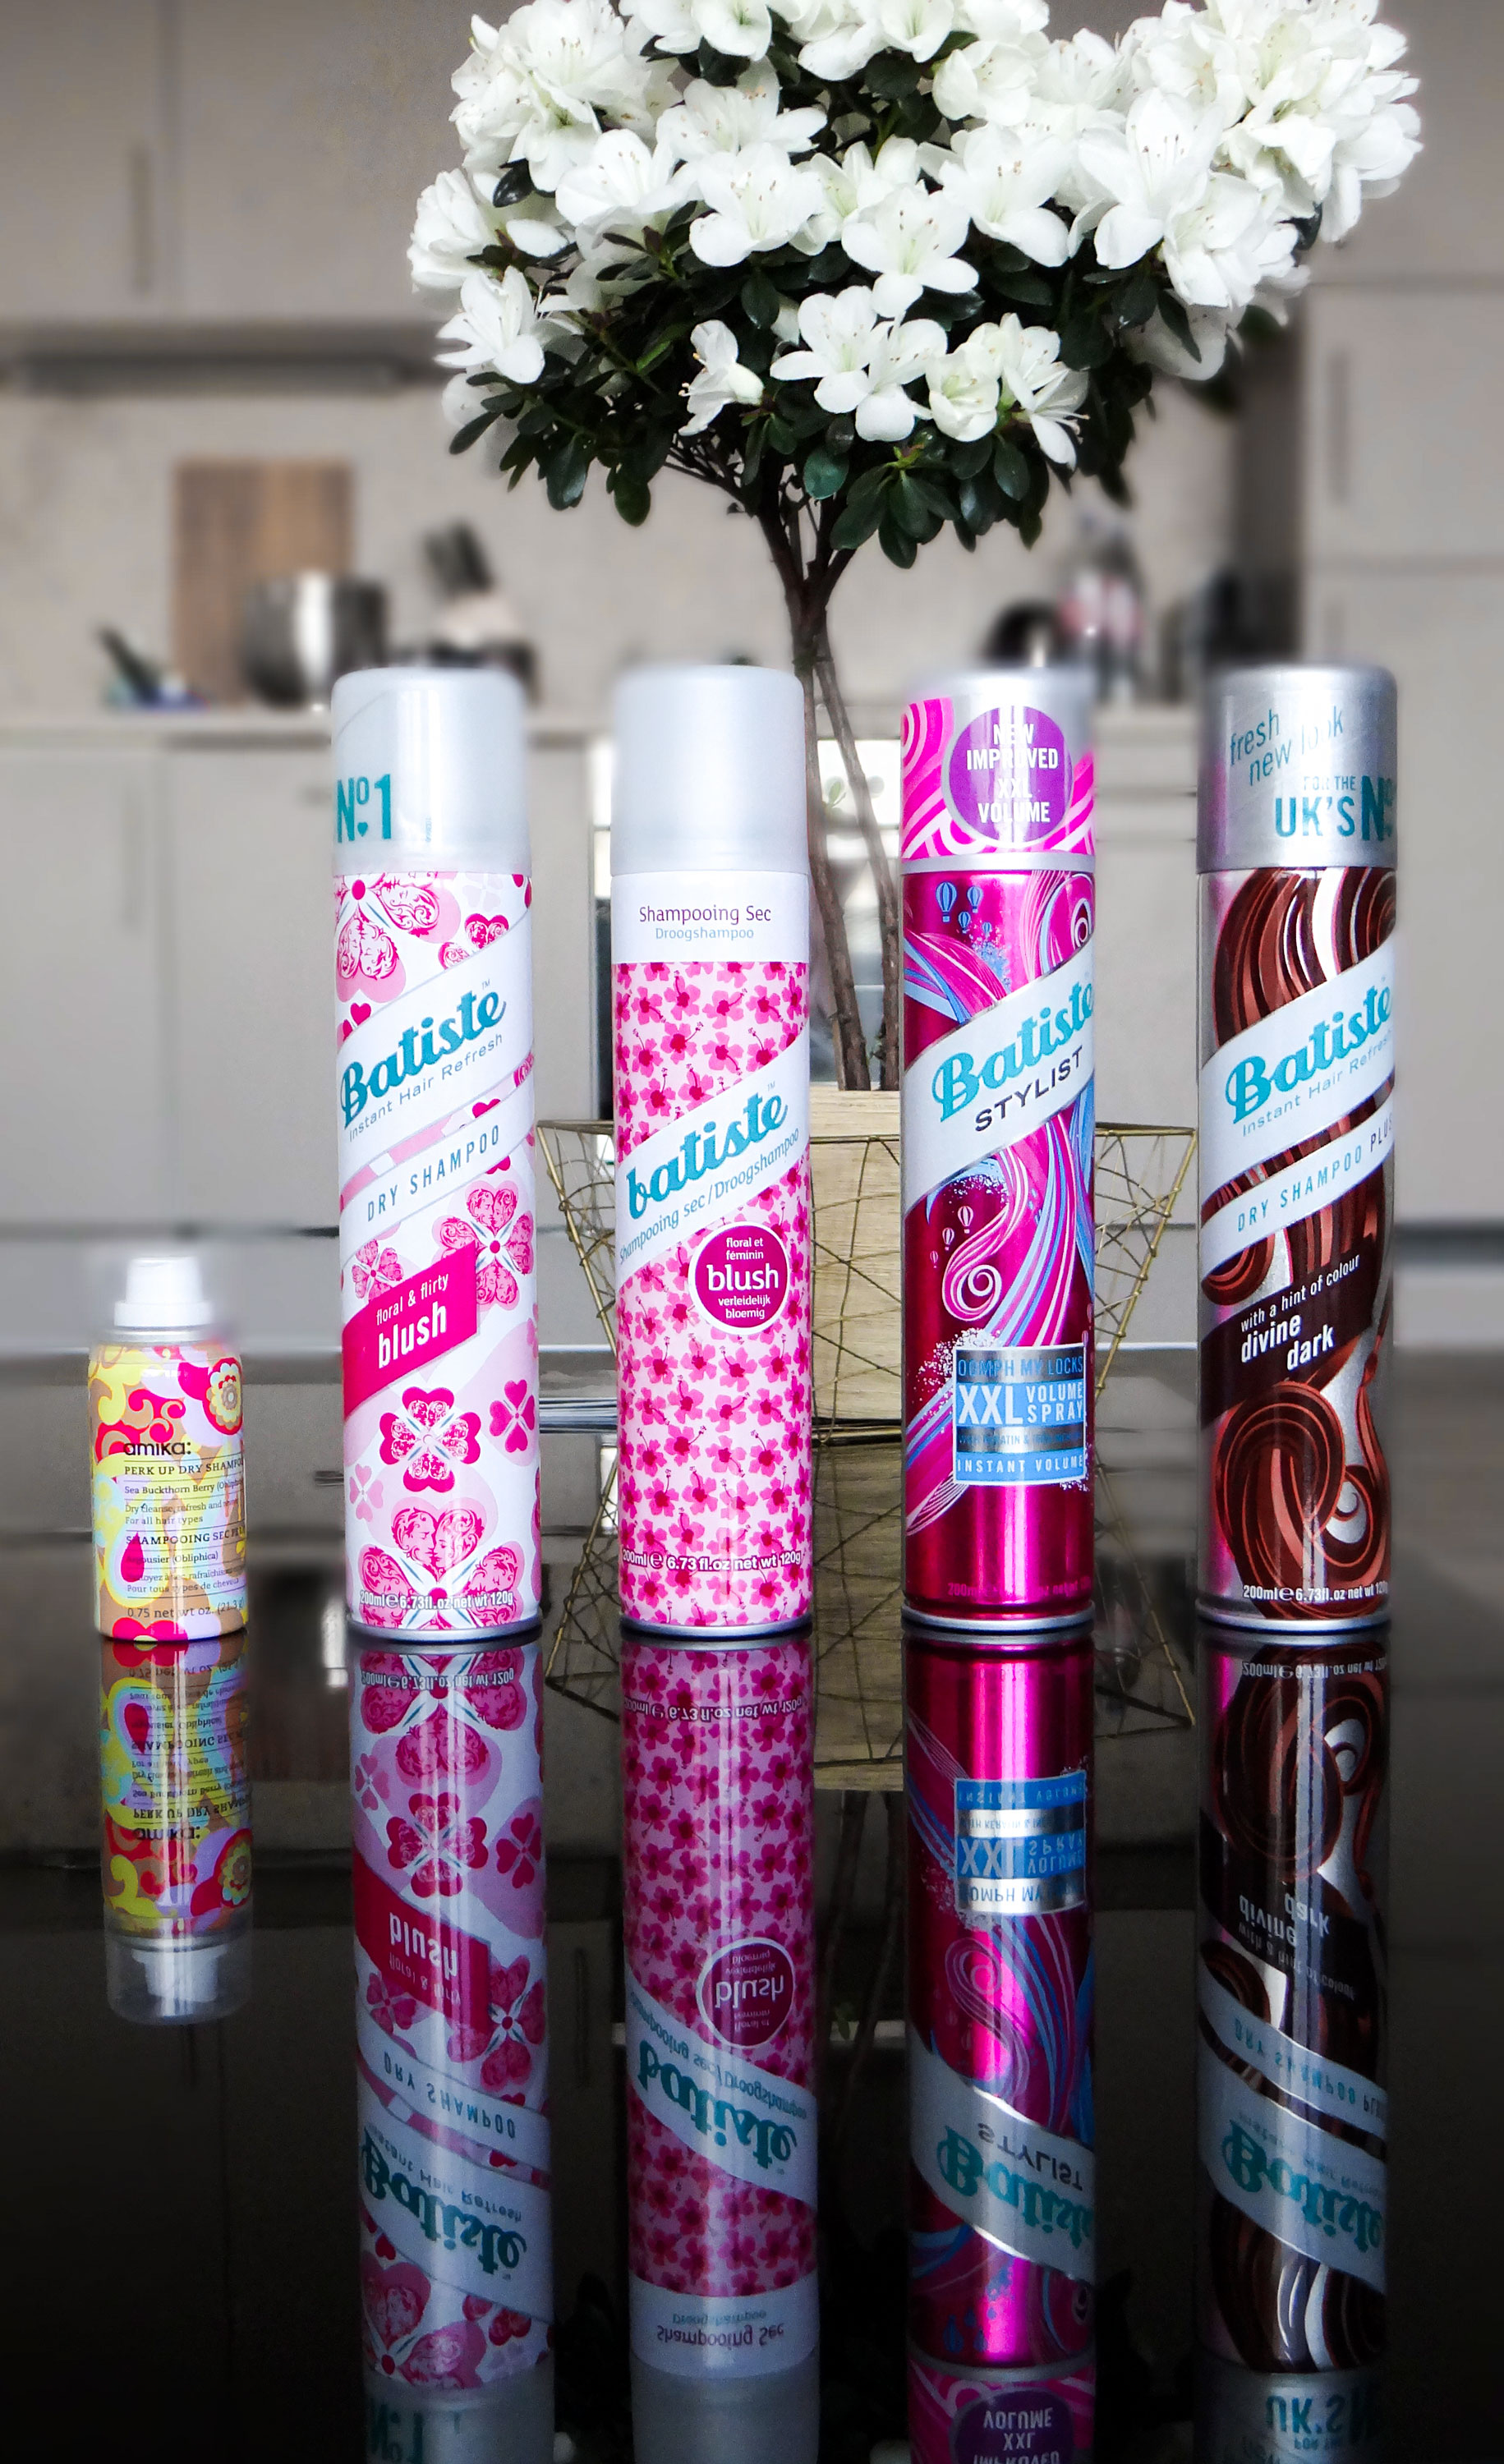 Batiste and Amika dry shampoos